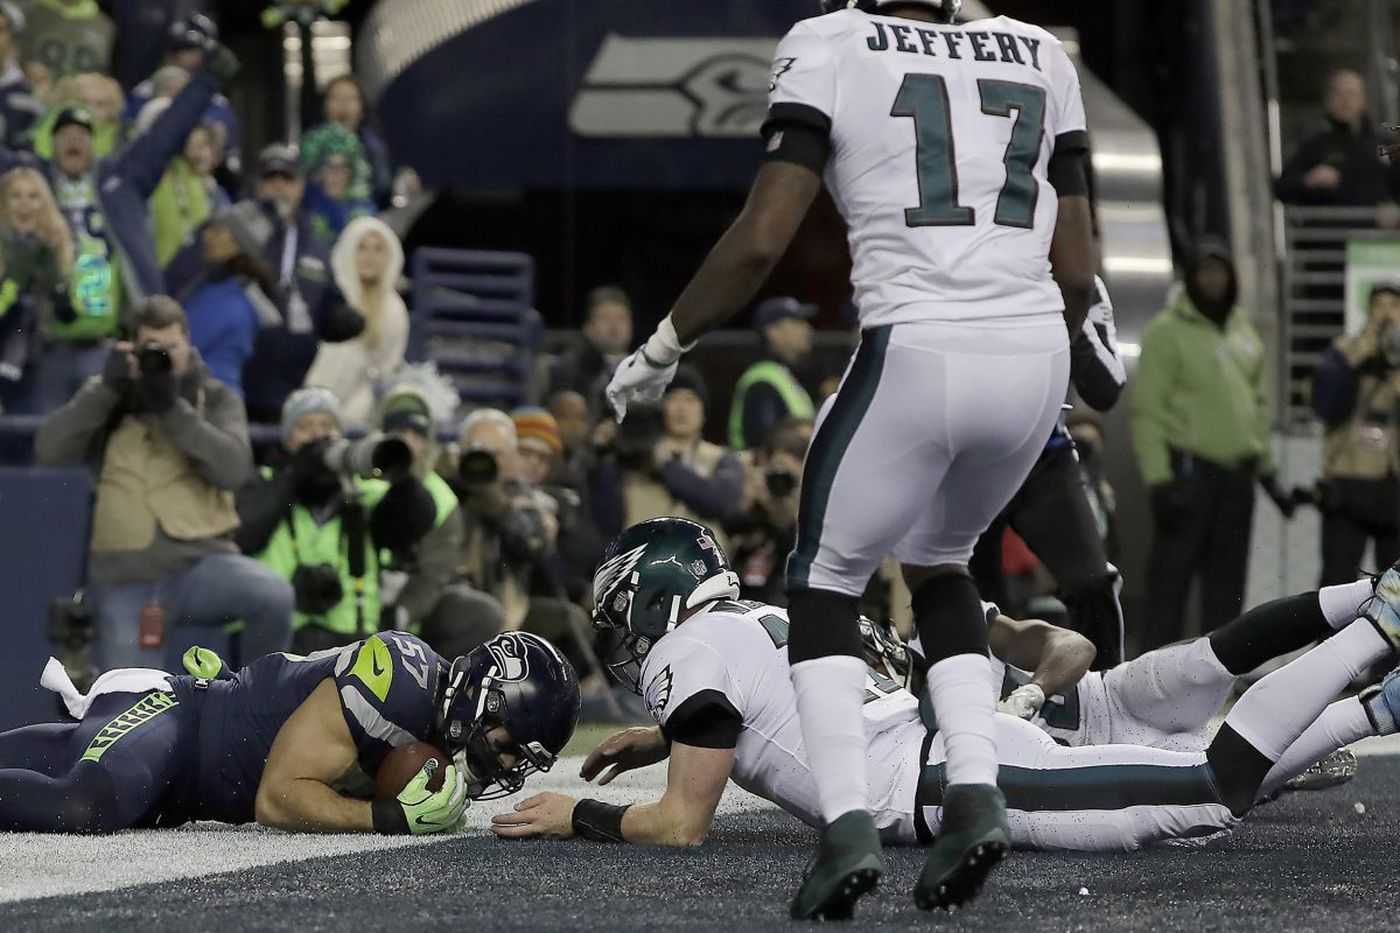 Eagles have concerns this week, but Carson Wentz isn't one of them